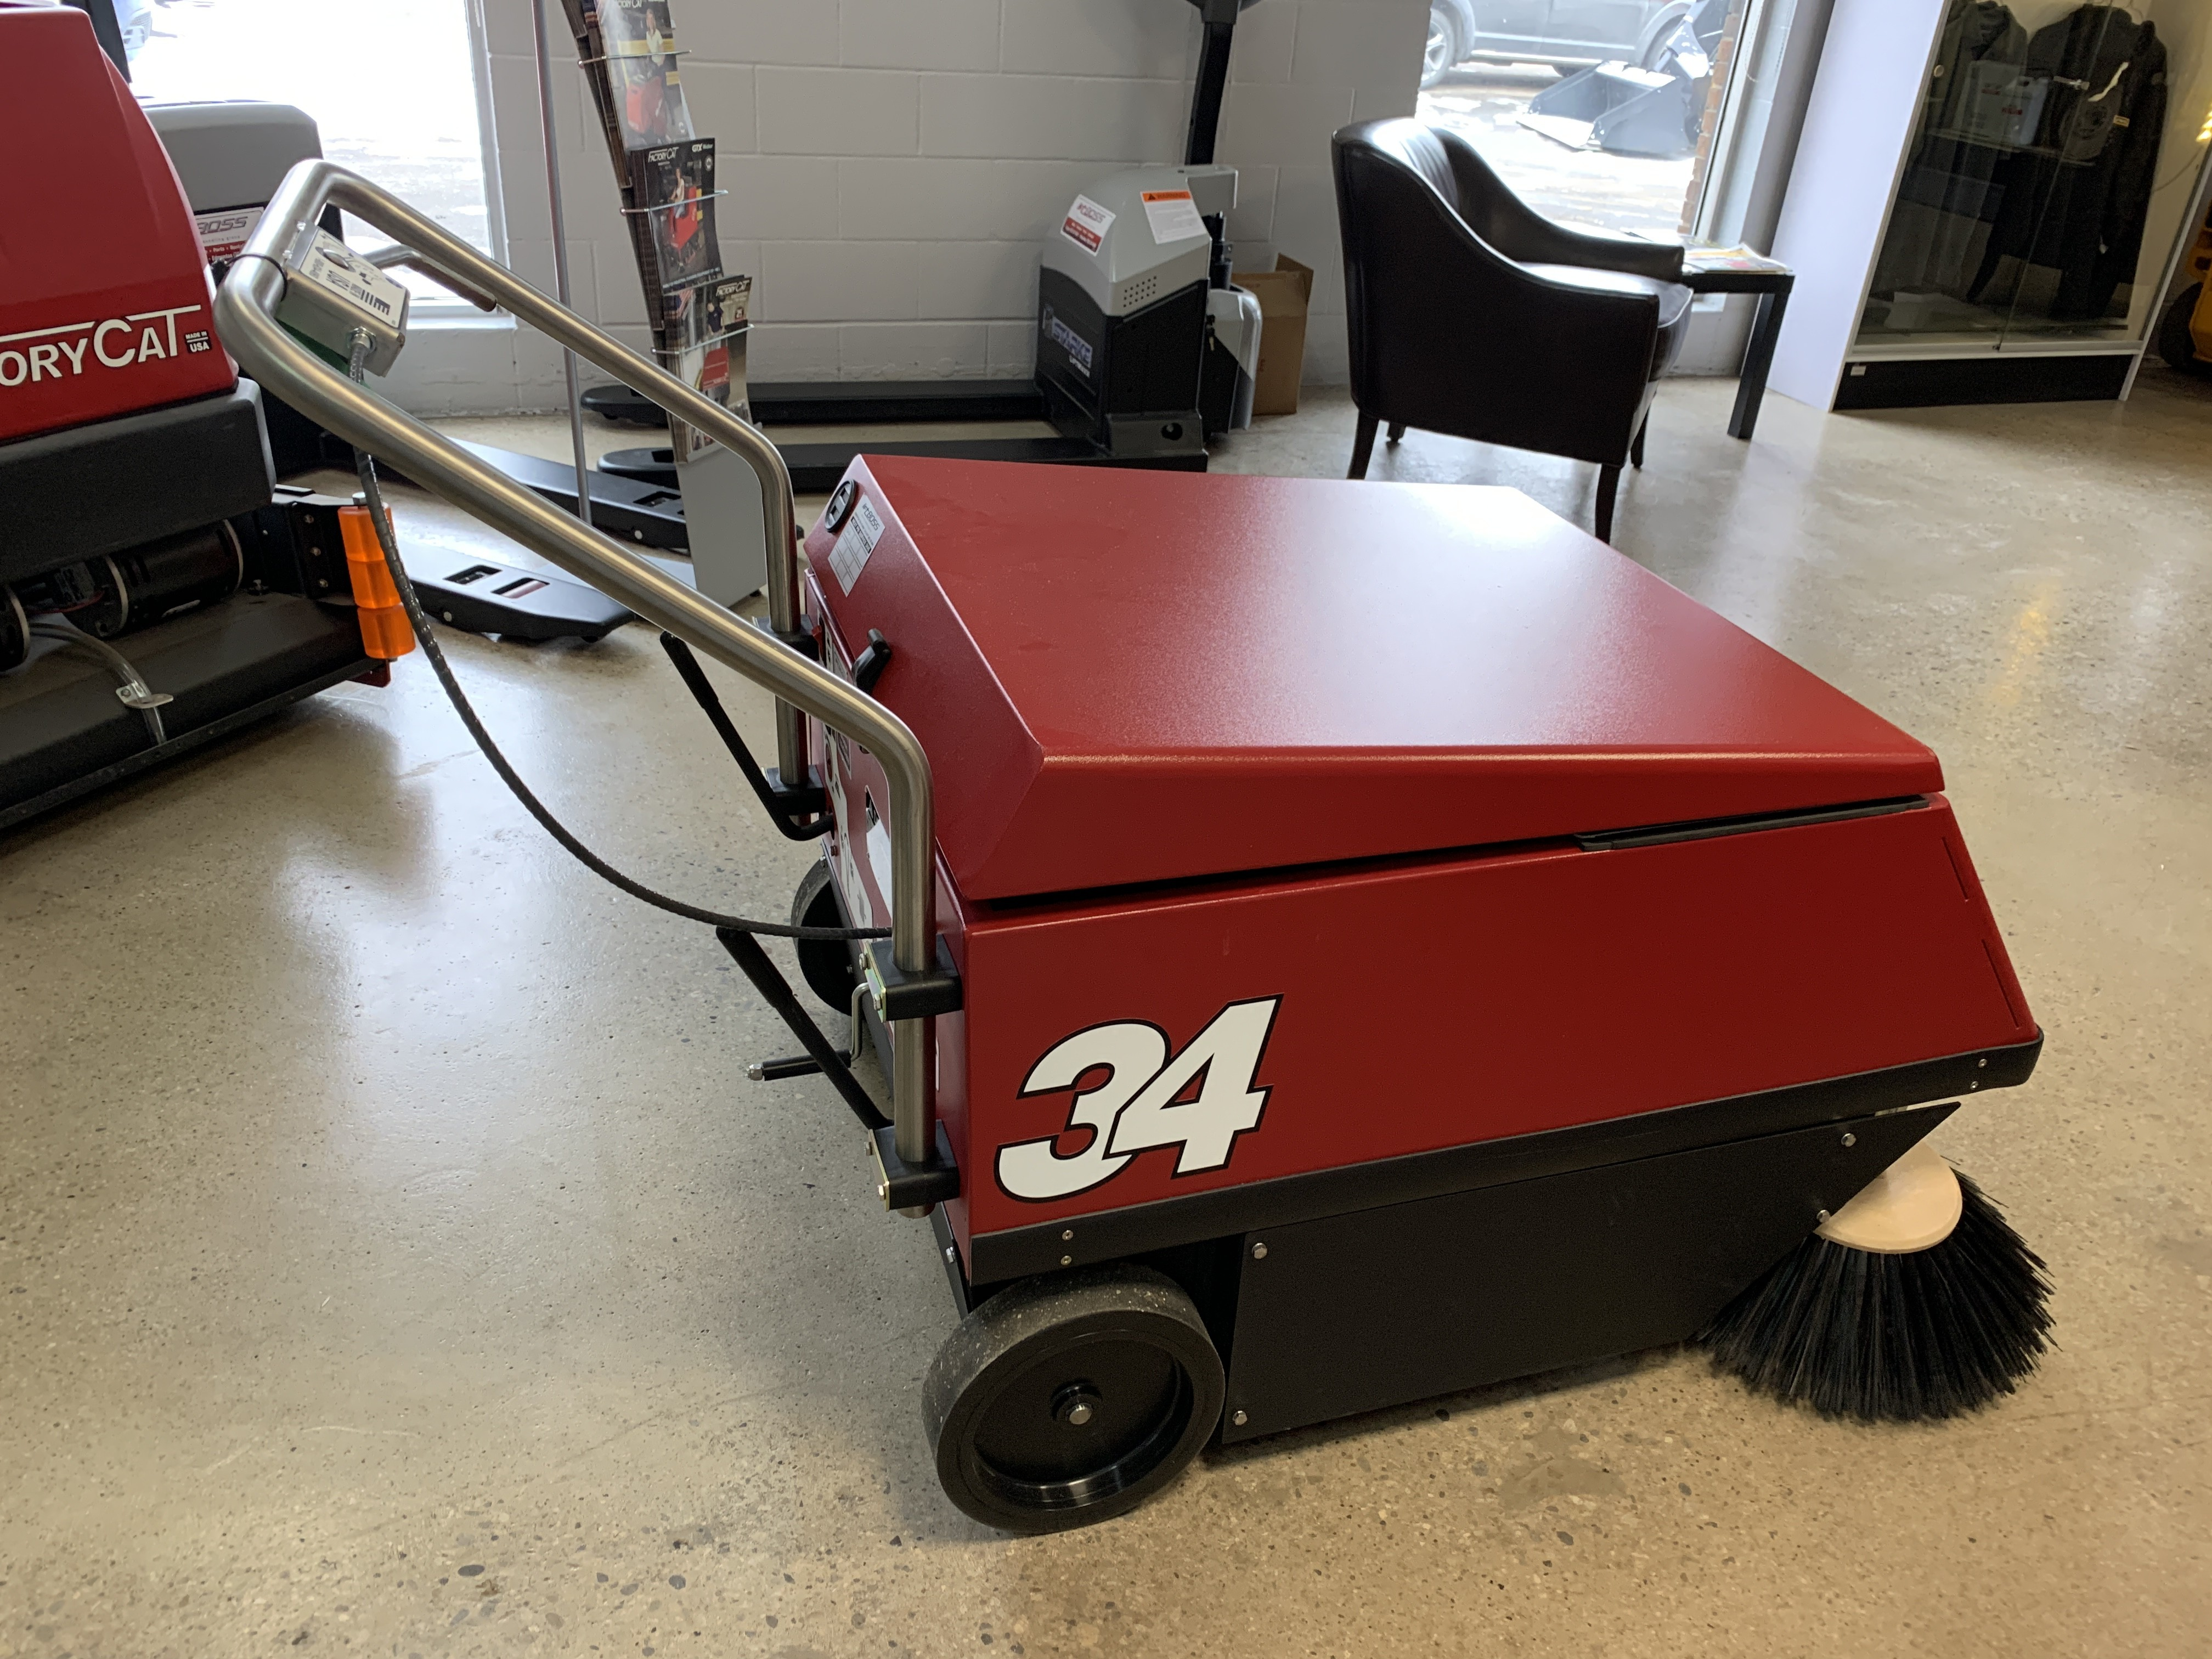 New, 2021, Factory Cat, 34 and 34HD Industrial Walk Behind Sweeper, Floor Cleaning Equipment